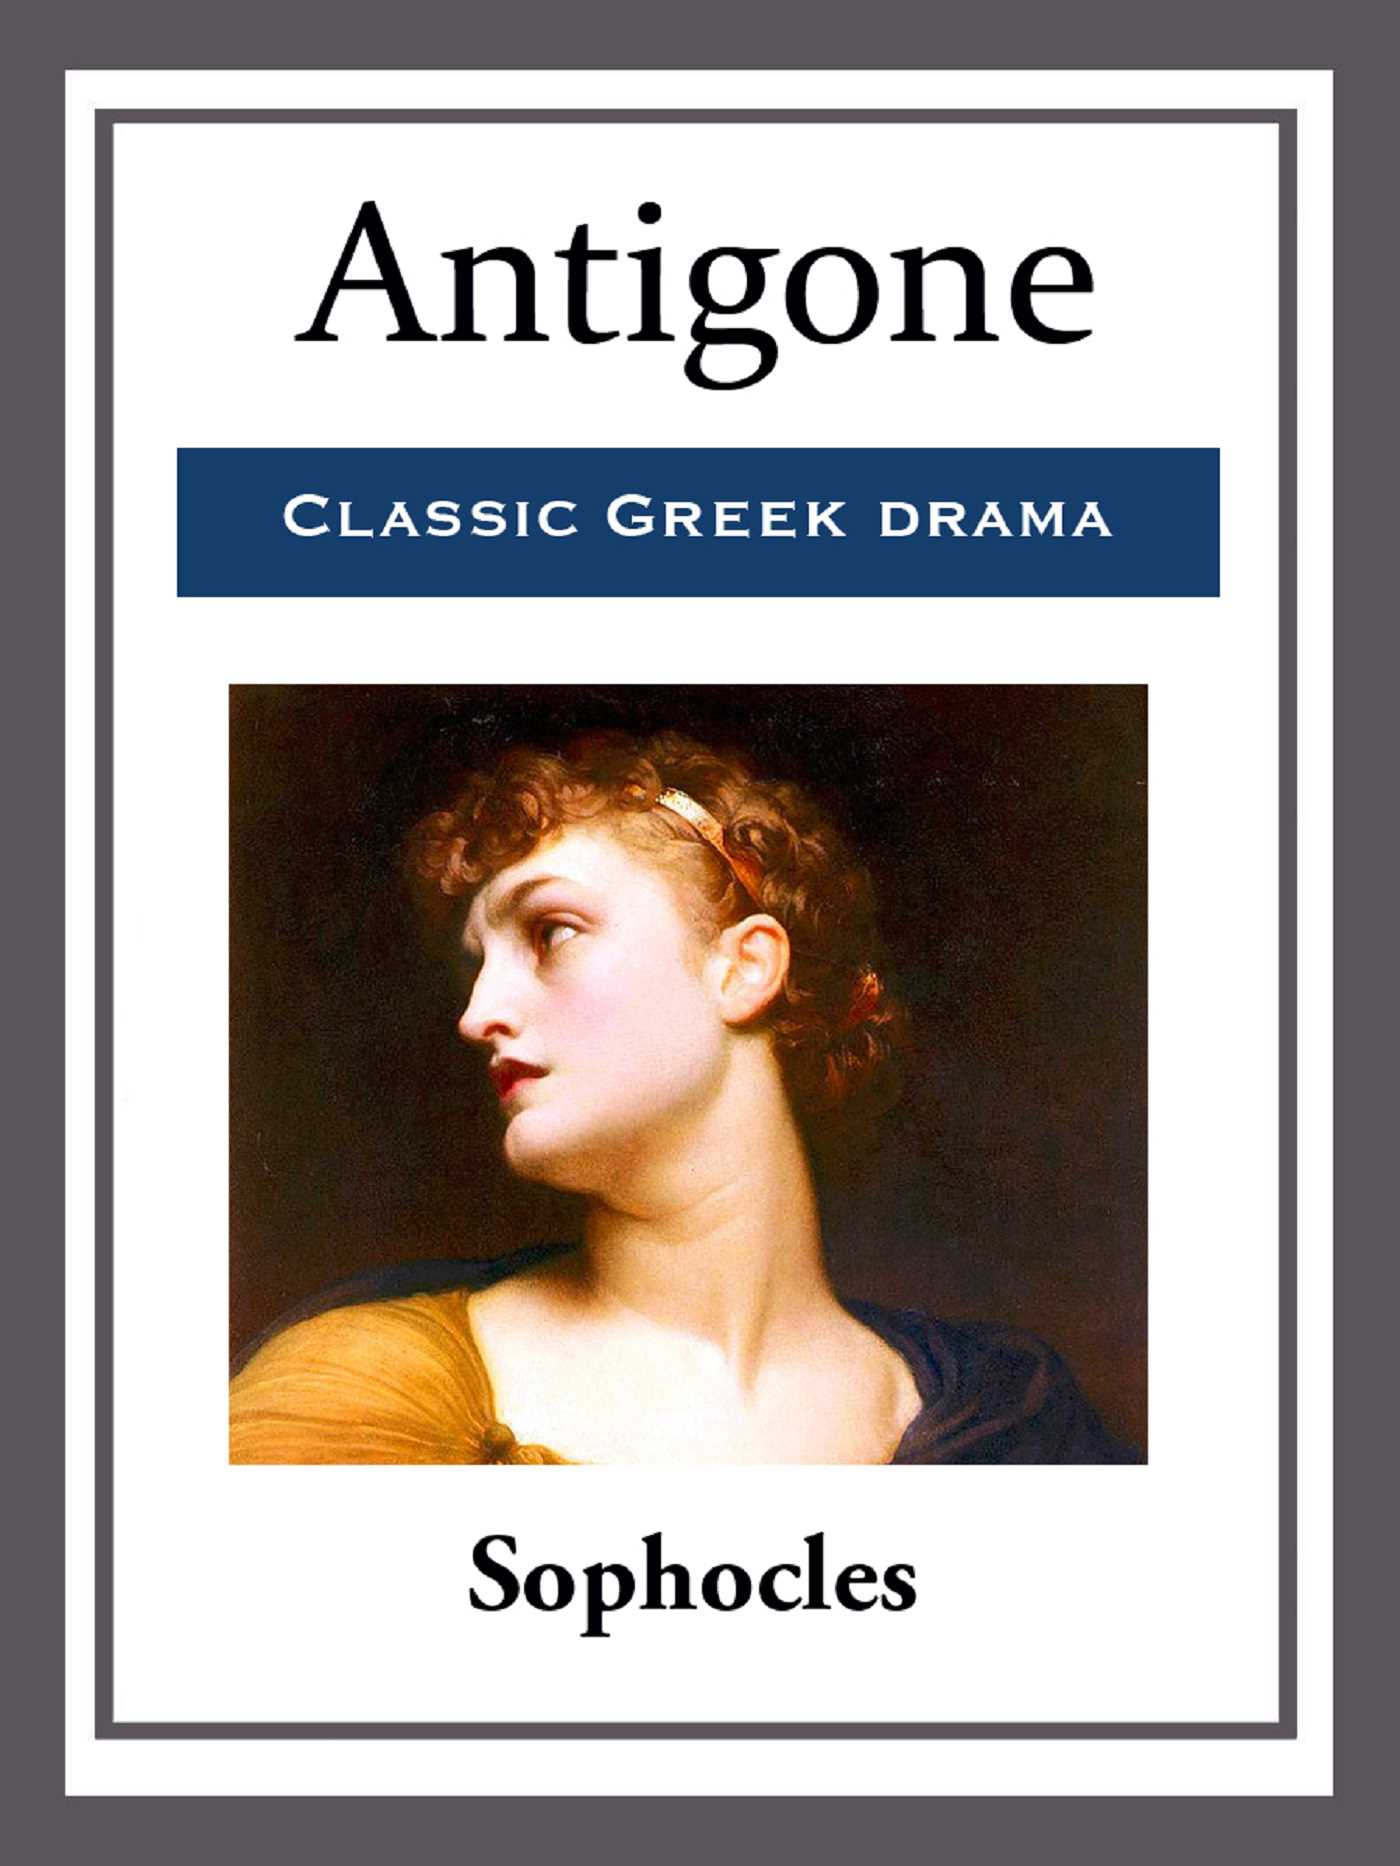 an analysis of drama elements in antigone by sophocles 'antigone', by sophocles, is a famous tragedy play which revolves around a sister's quest to get a decent burial for her dead brother's body, much against antigone is a famous play by sophocles, and a part of the three theban plays the main protagonist is antigone, daughter of the king oedipus.